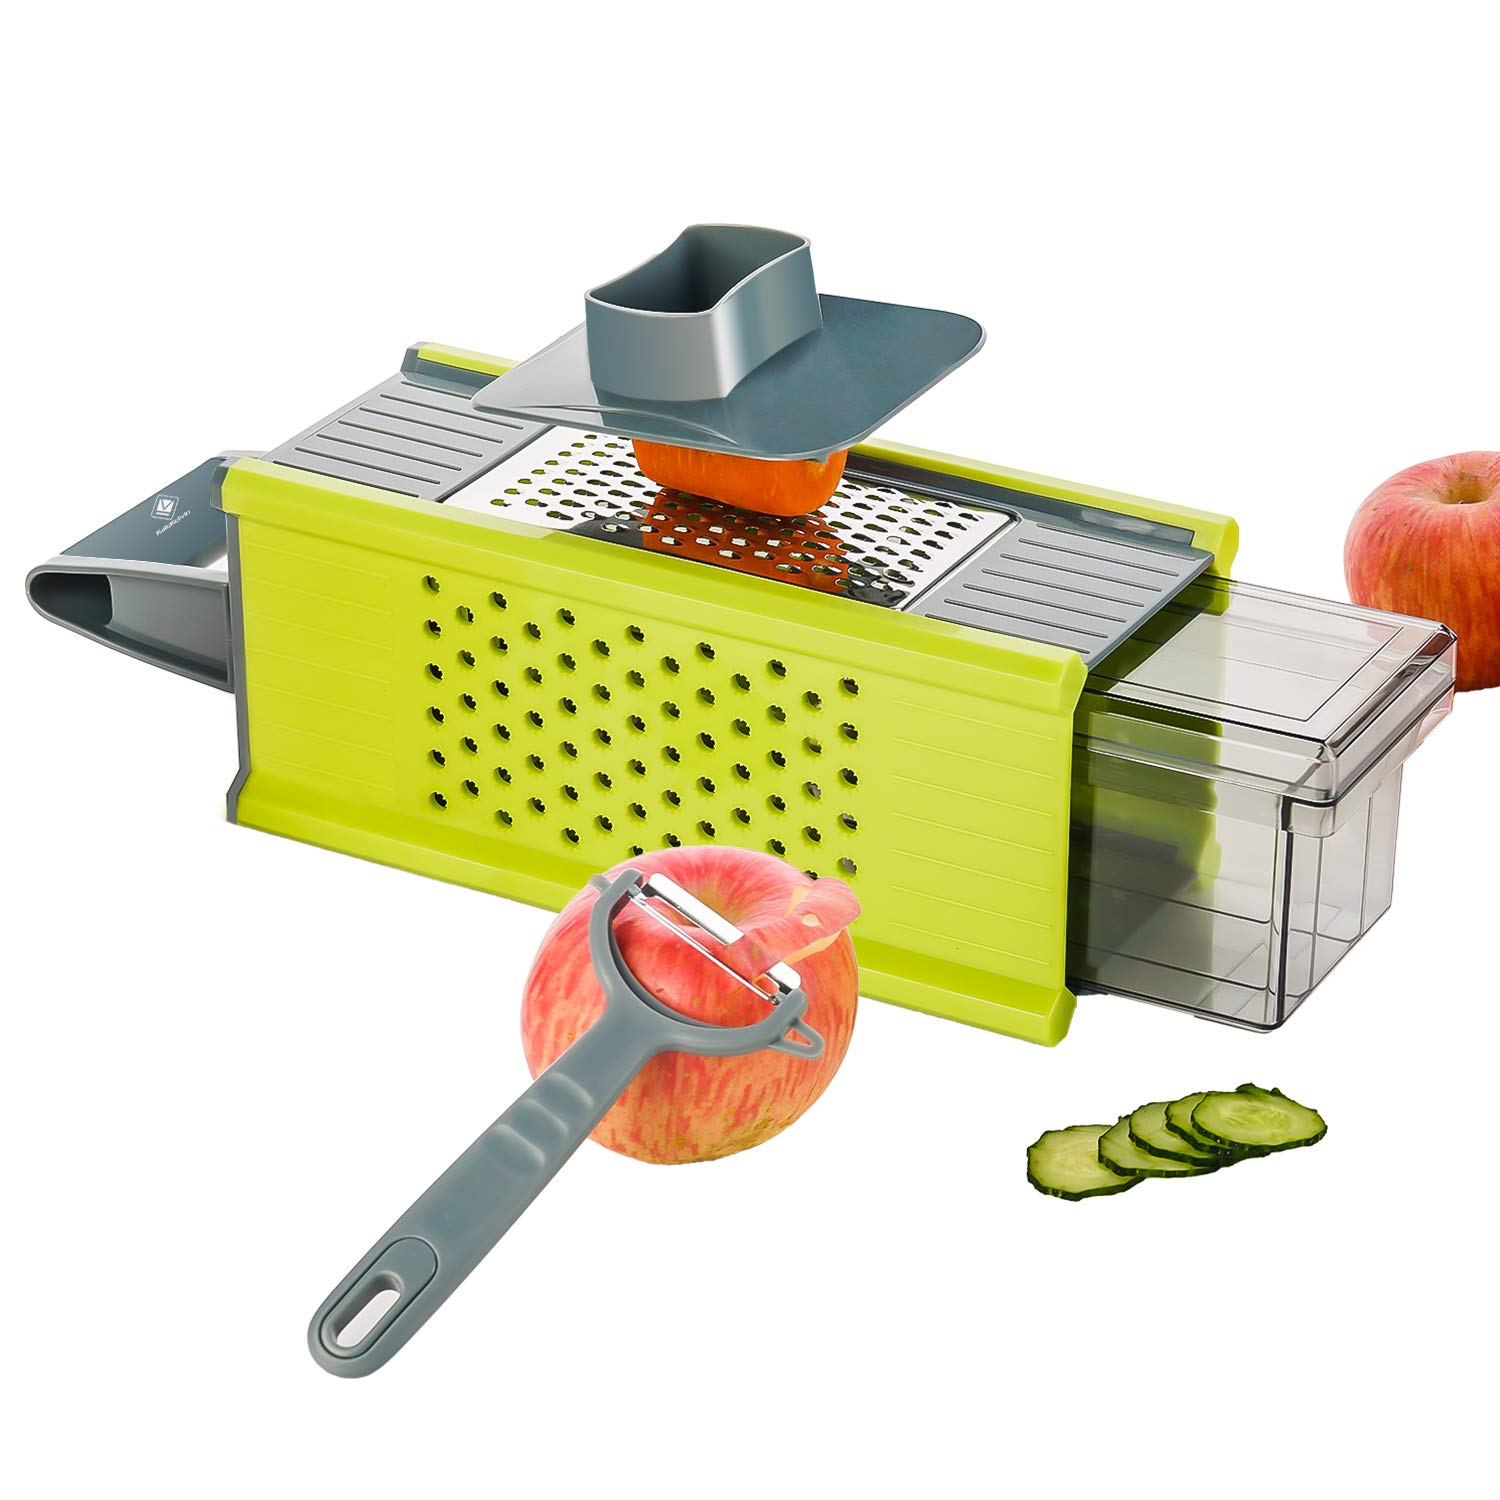 kalokelvin Handheld Box Grater Onion Food Vegetable Chopper Slicer Potato Tomato Grater /Safe Stainless Steel 4 Sided Kitchen Hand Graters/5 in 1 Storage Container